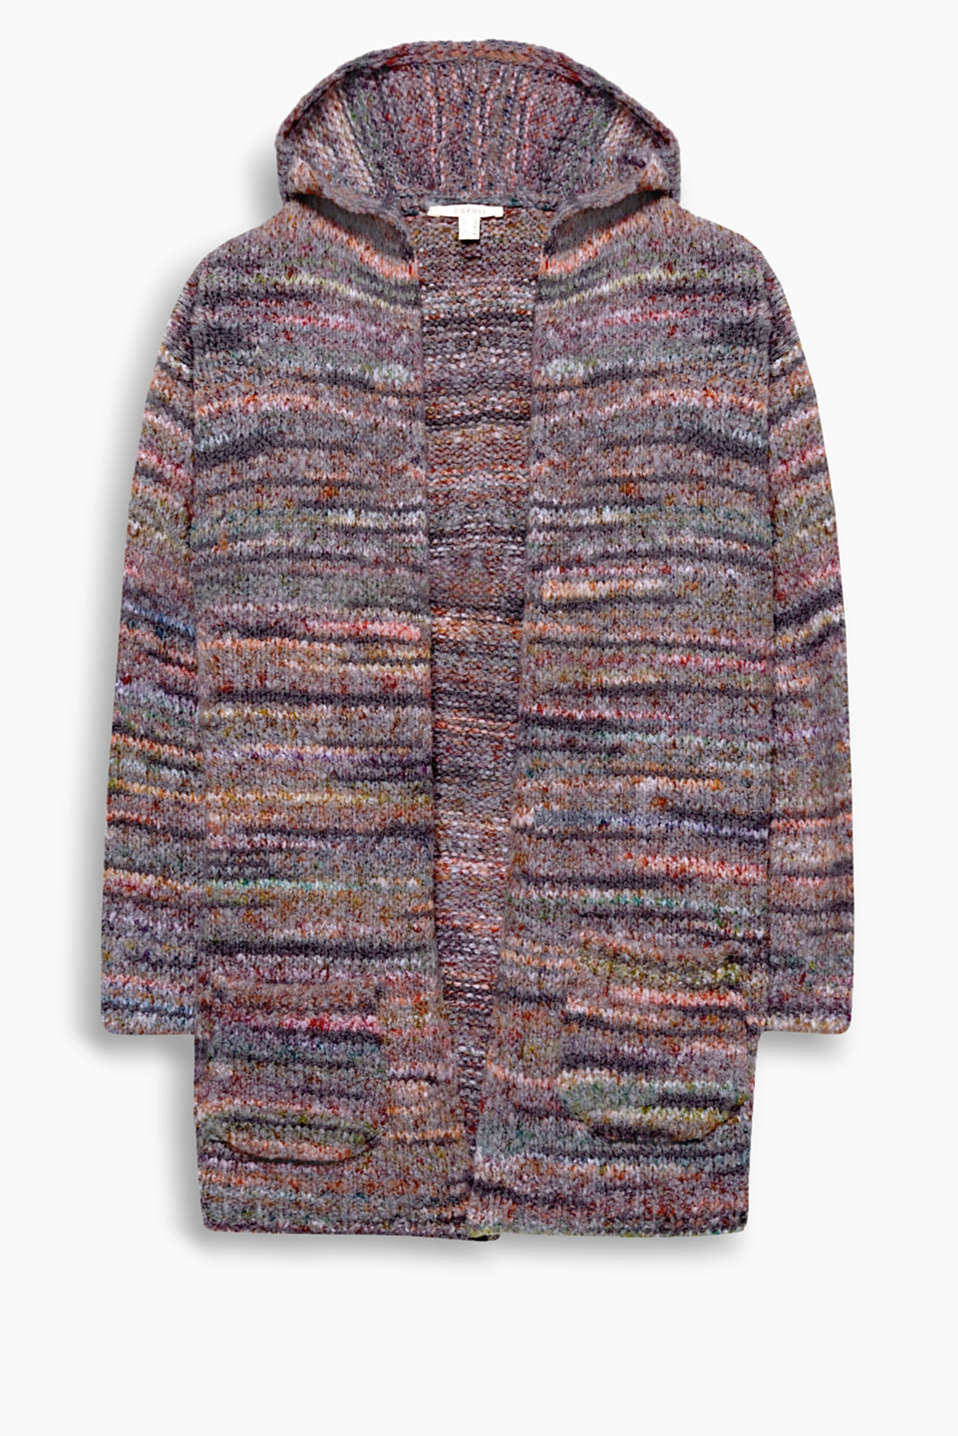 With a brightly coloured mottled effect with an open design + hood, this open cardigan in a wool blend is a cosy piece!